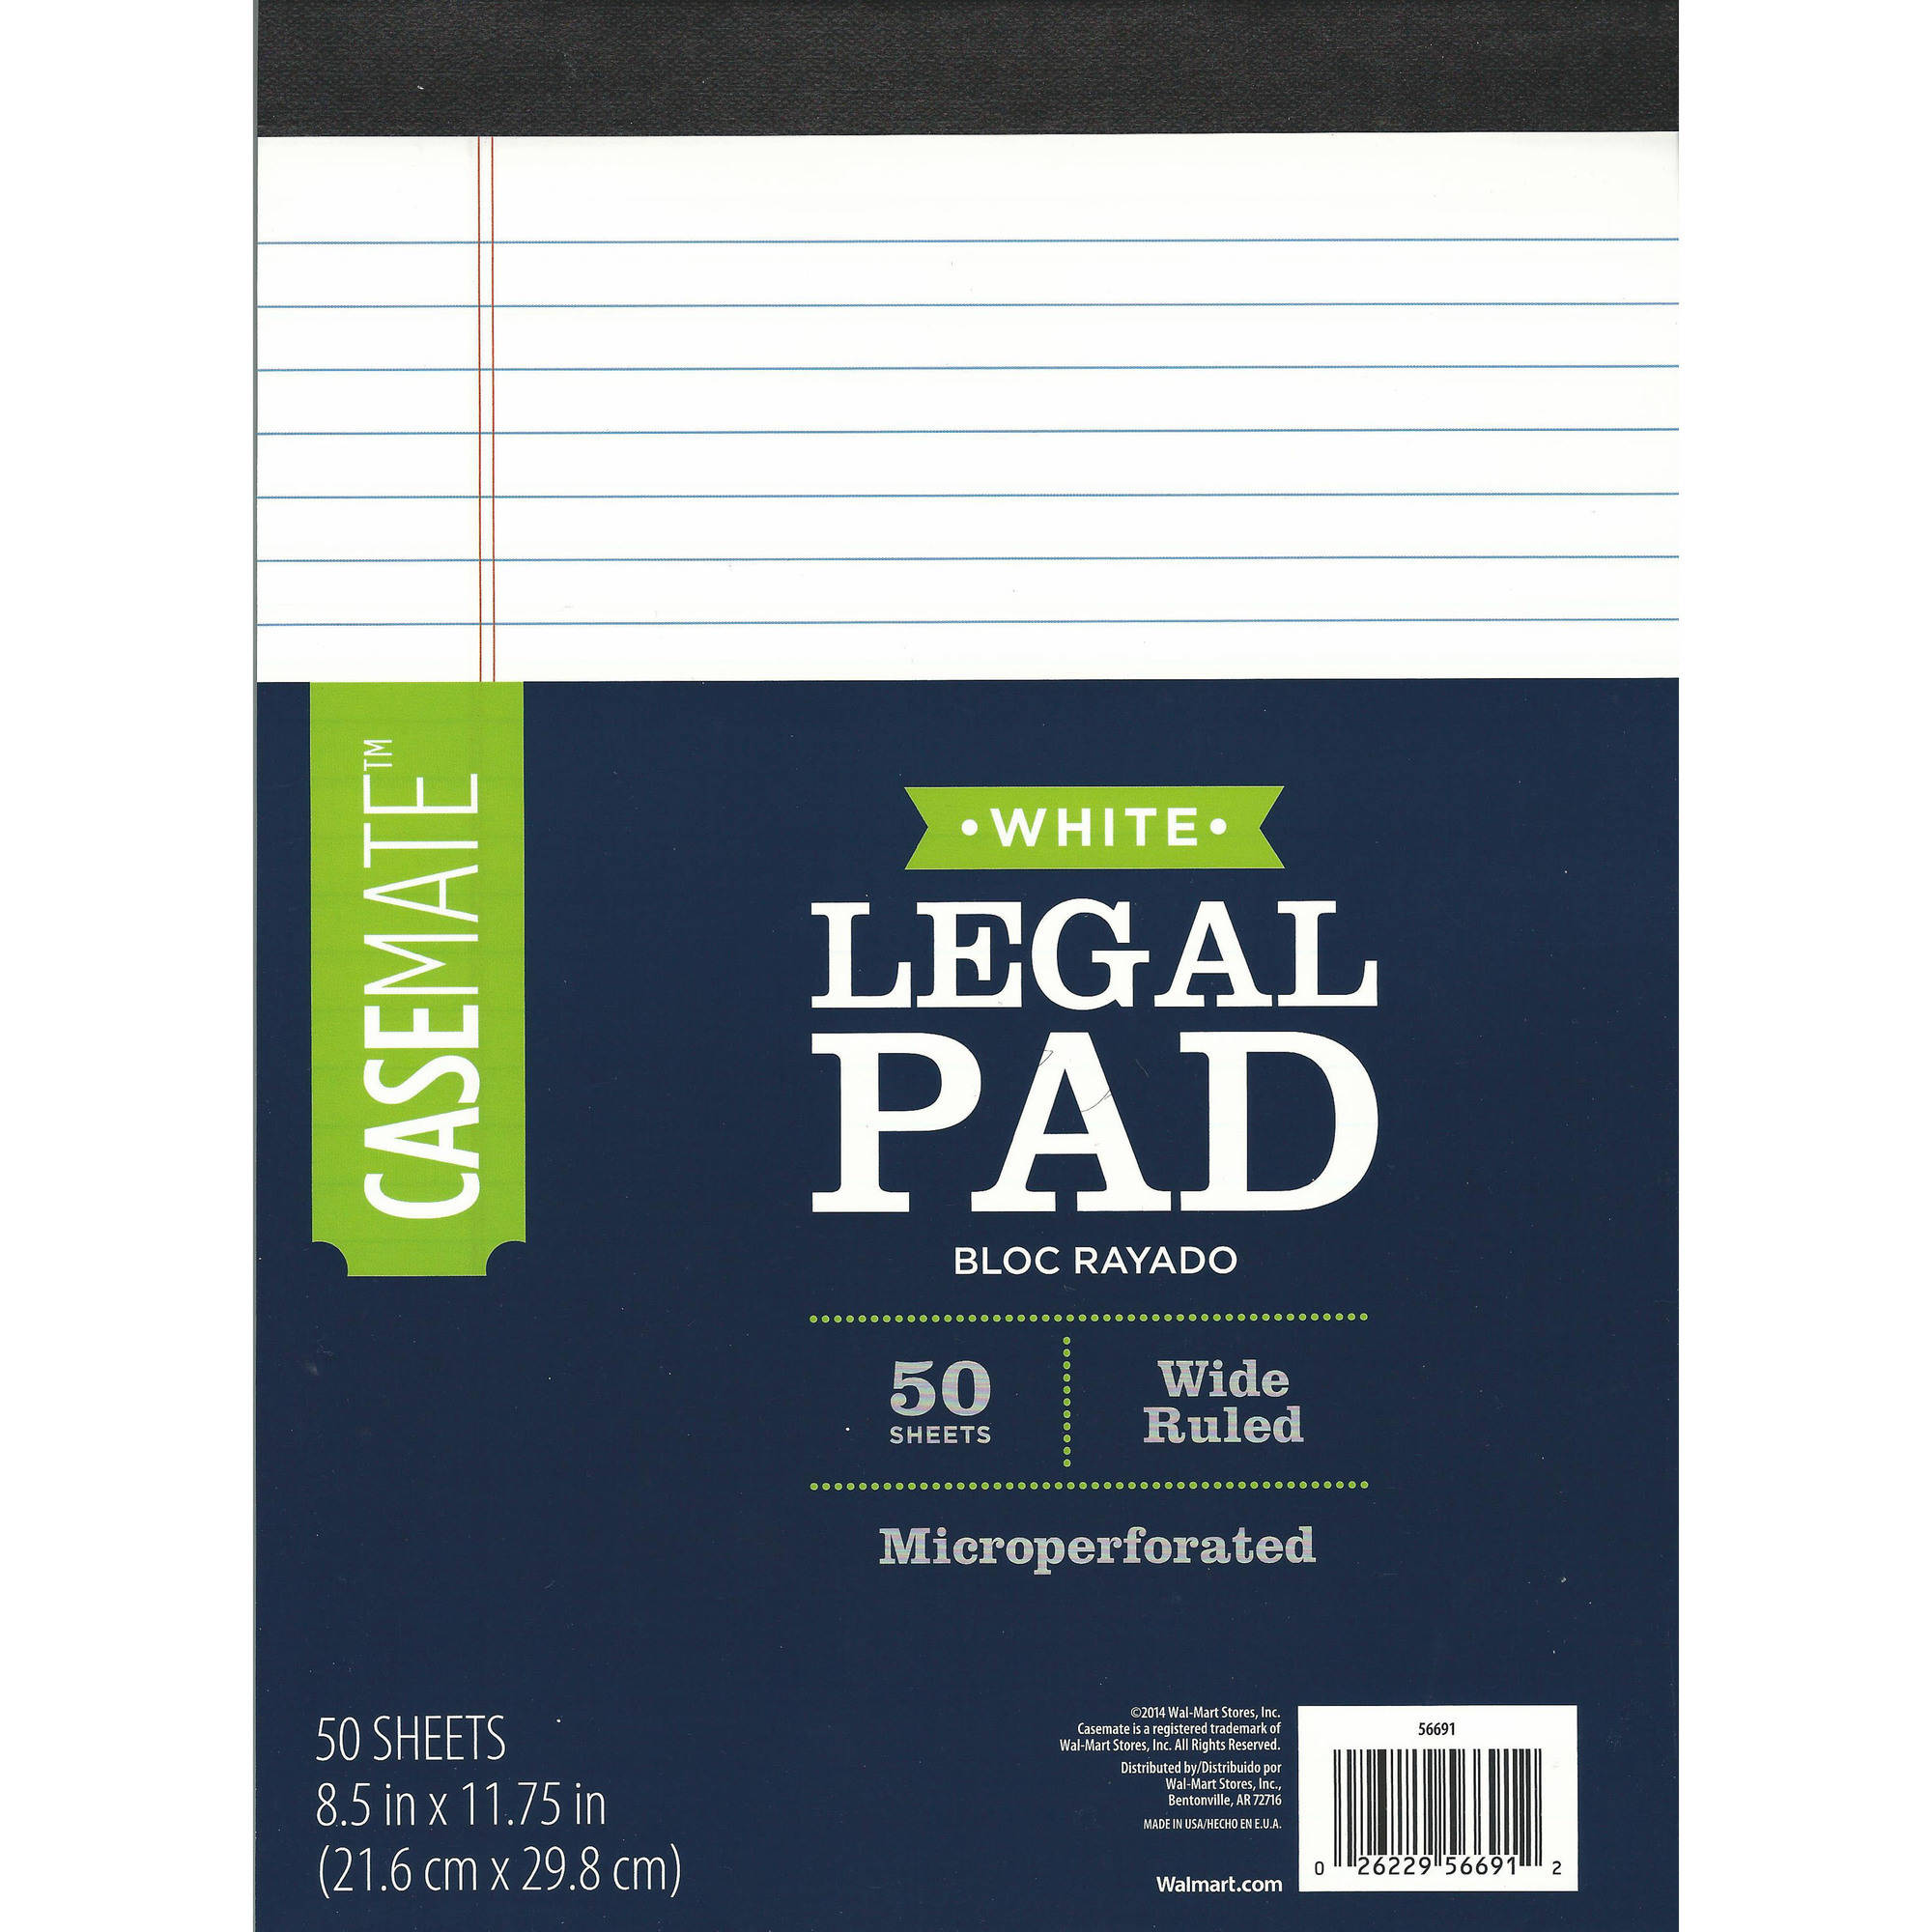 Pen+Gear Canary Legal Pad, White, 8.5 in x 11.75 in, 50 Sheet